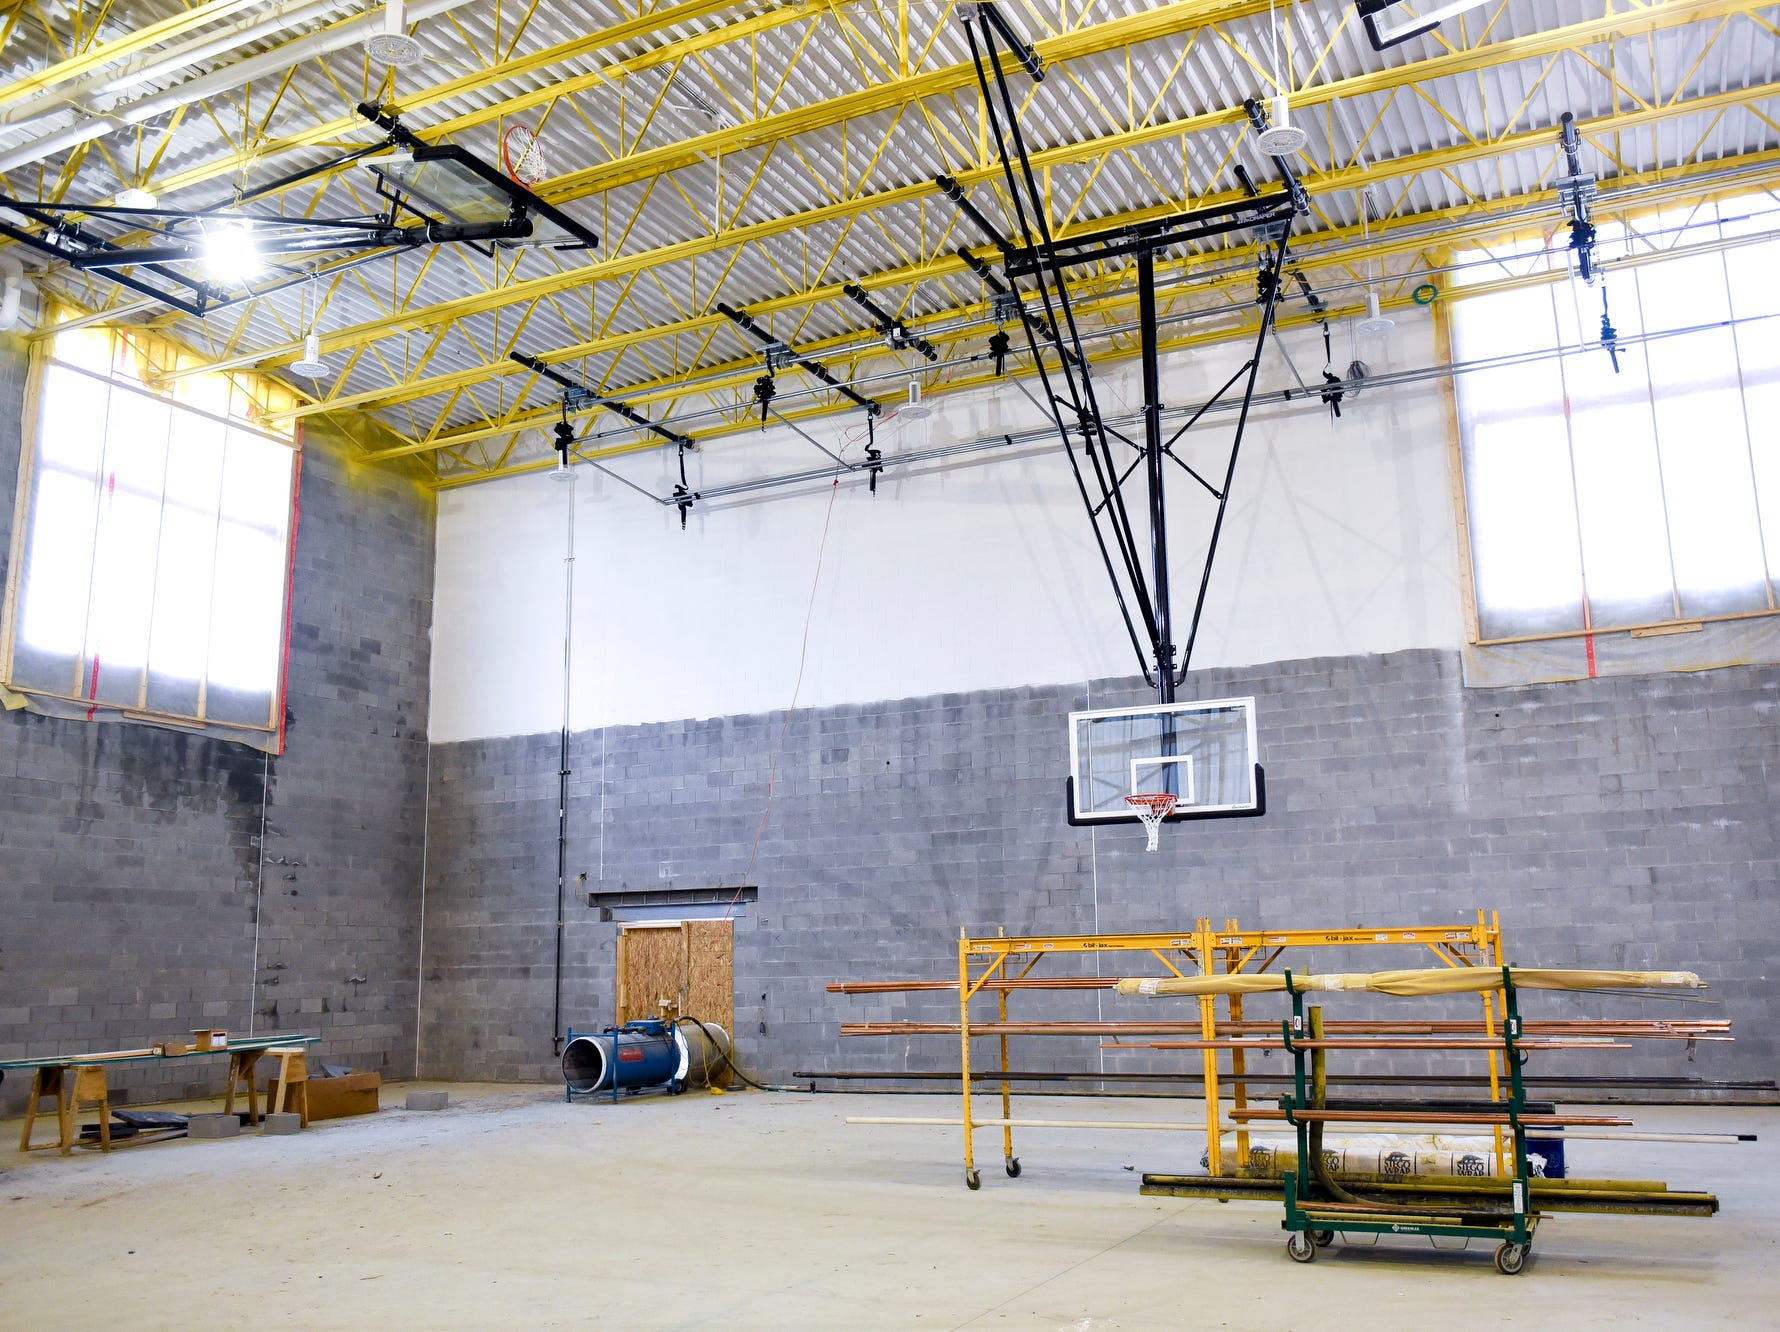 A view of the auxiliary gym during a tour of the construction of the new Eastern High School on Thursday, March 14, 2019, in Lansing. The project is being funded by the district's successful Pathway Promise millage, which was passed by voters in 2016. The building was formerly Pattengill Academy.